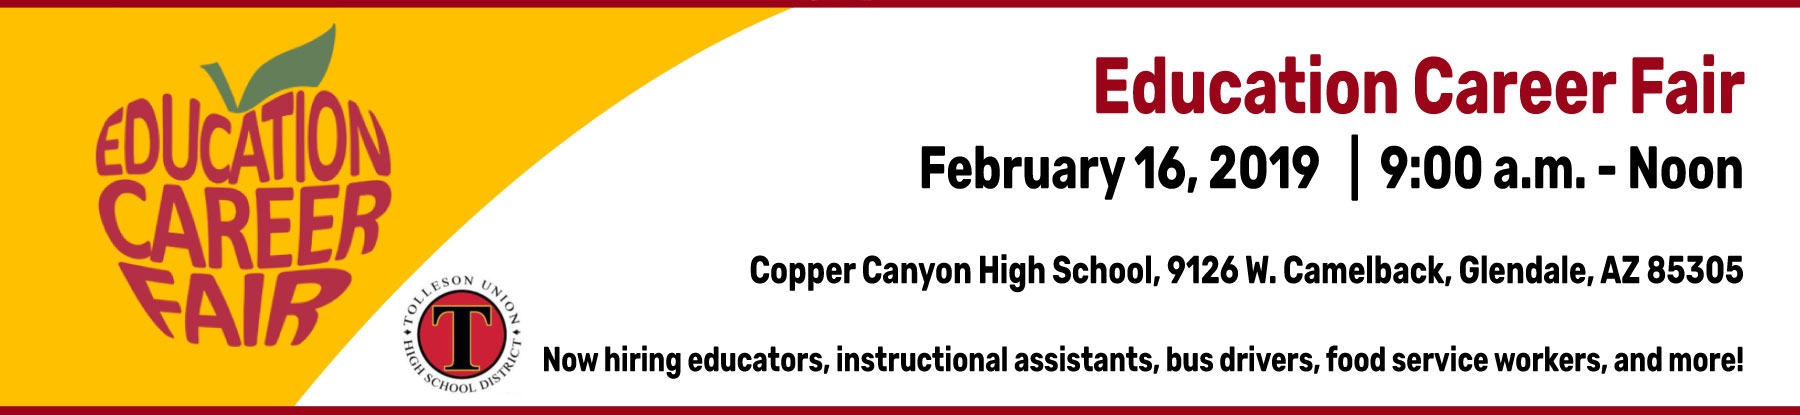 Education Career Fair  - February 16, 2019. 9:00 a.m.-Noon. Copper Canyon High School, 9126 W. Camelback, Glendale, AZ 85305. Now hiring educators, instructional assistants, bus drivers, food services, and more! Tolleson Union High School District logo